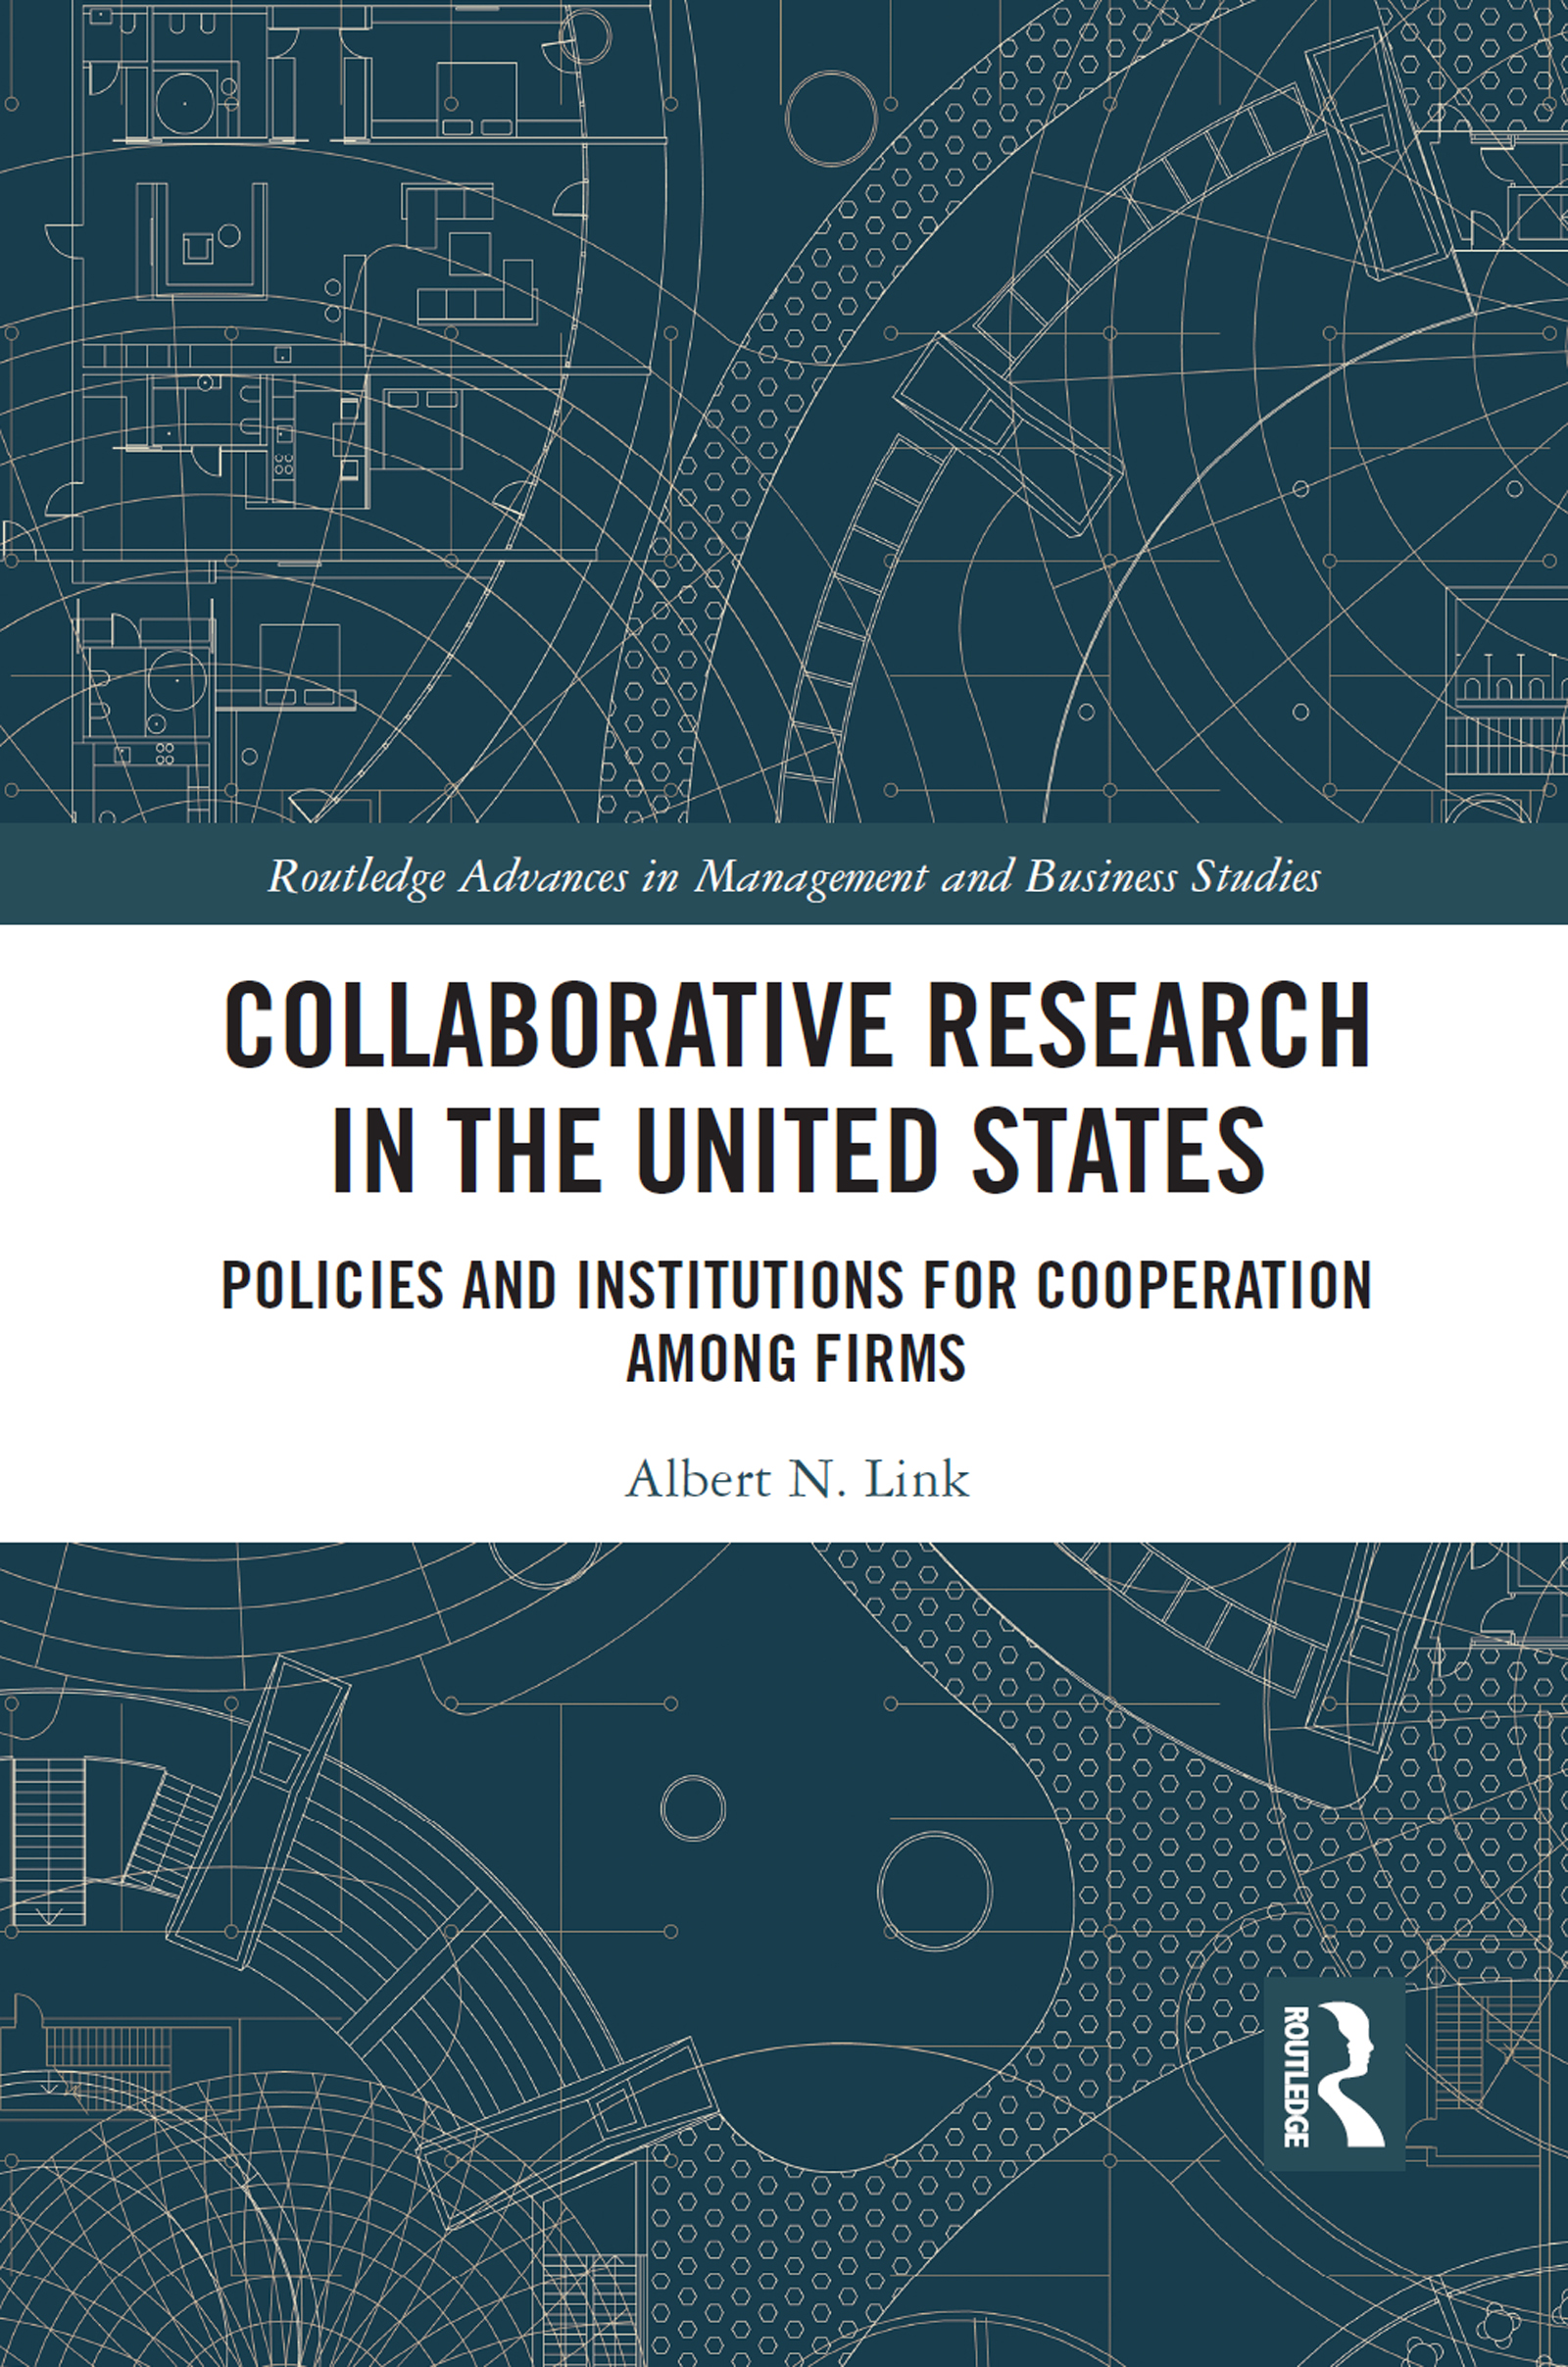 Collaborative Research in the United States